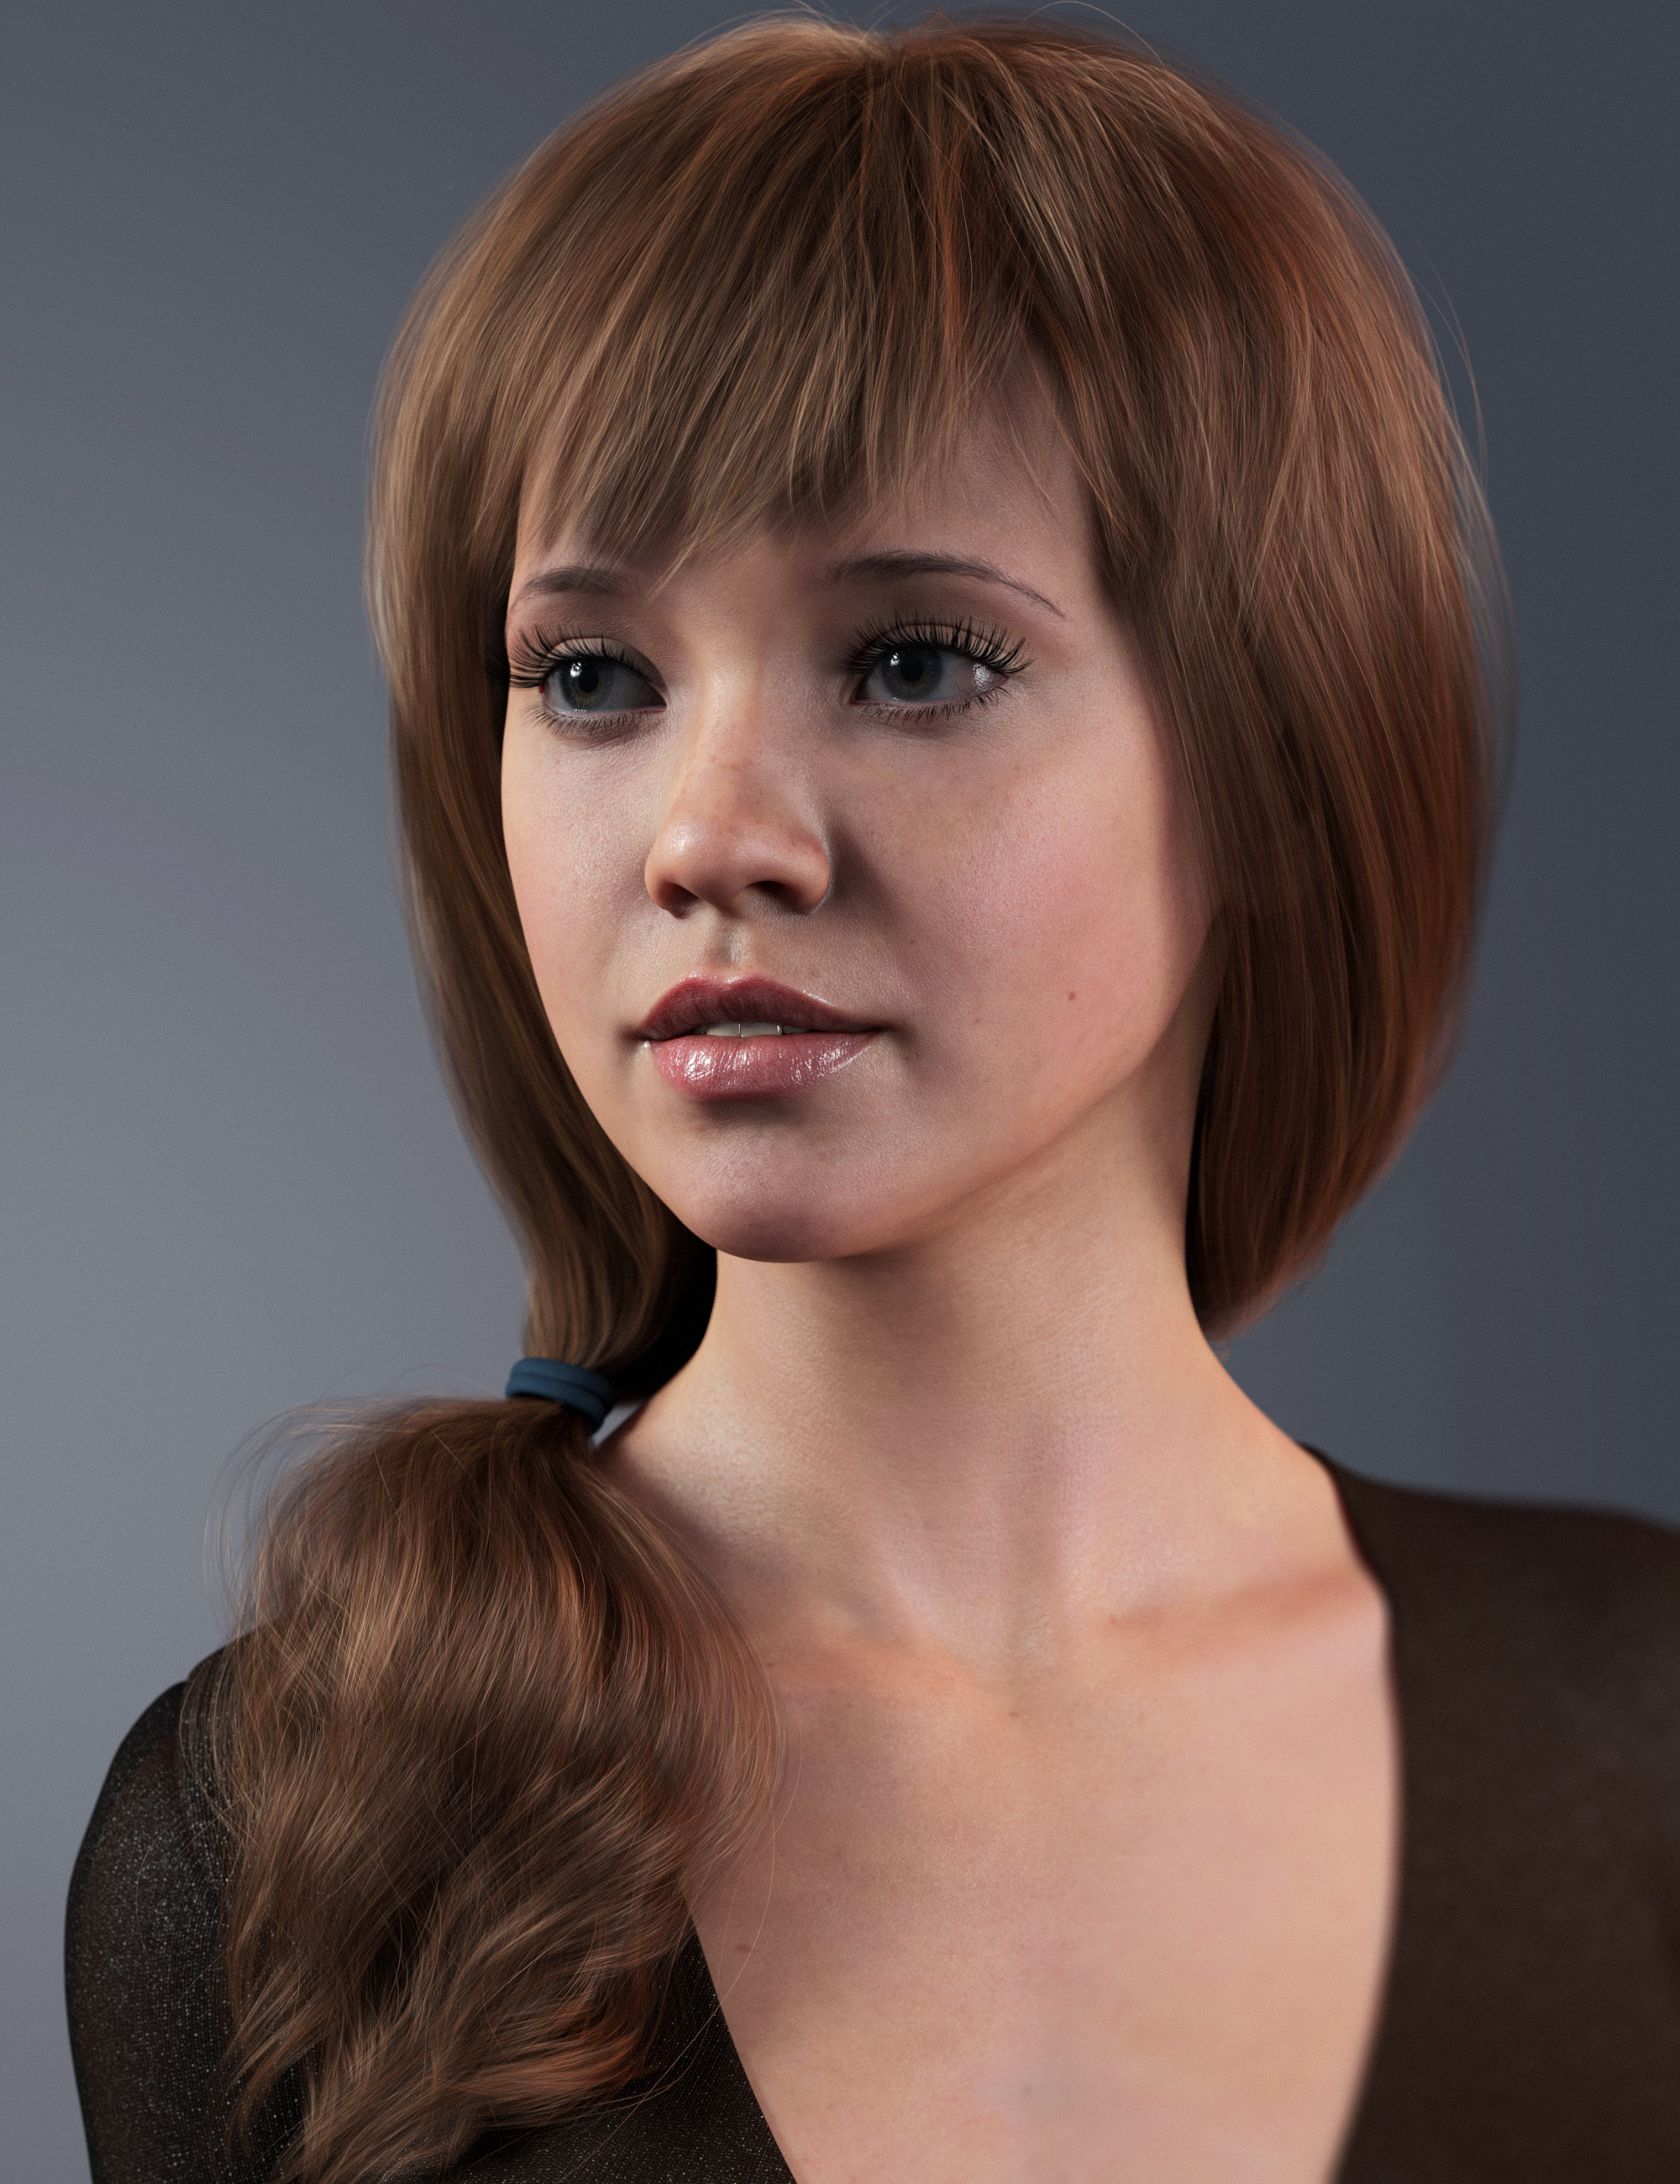 2021-05 Hair for Genesis 8 and 8.1 Females by: outoftouch, 3D Models by Daz 3D